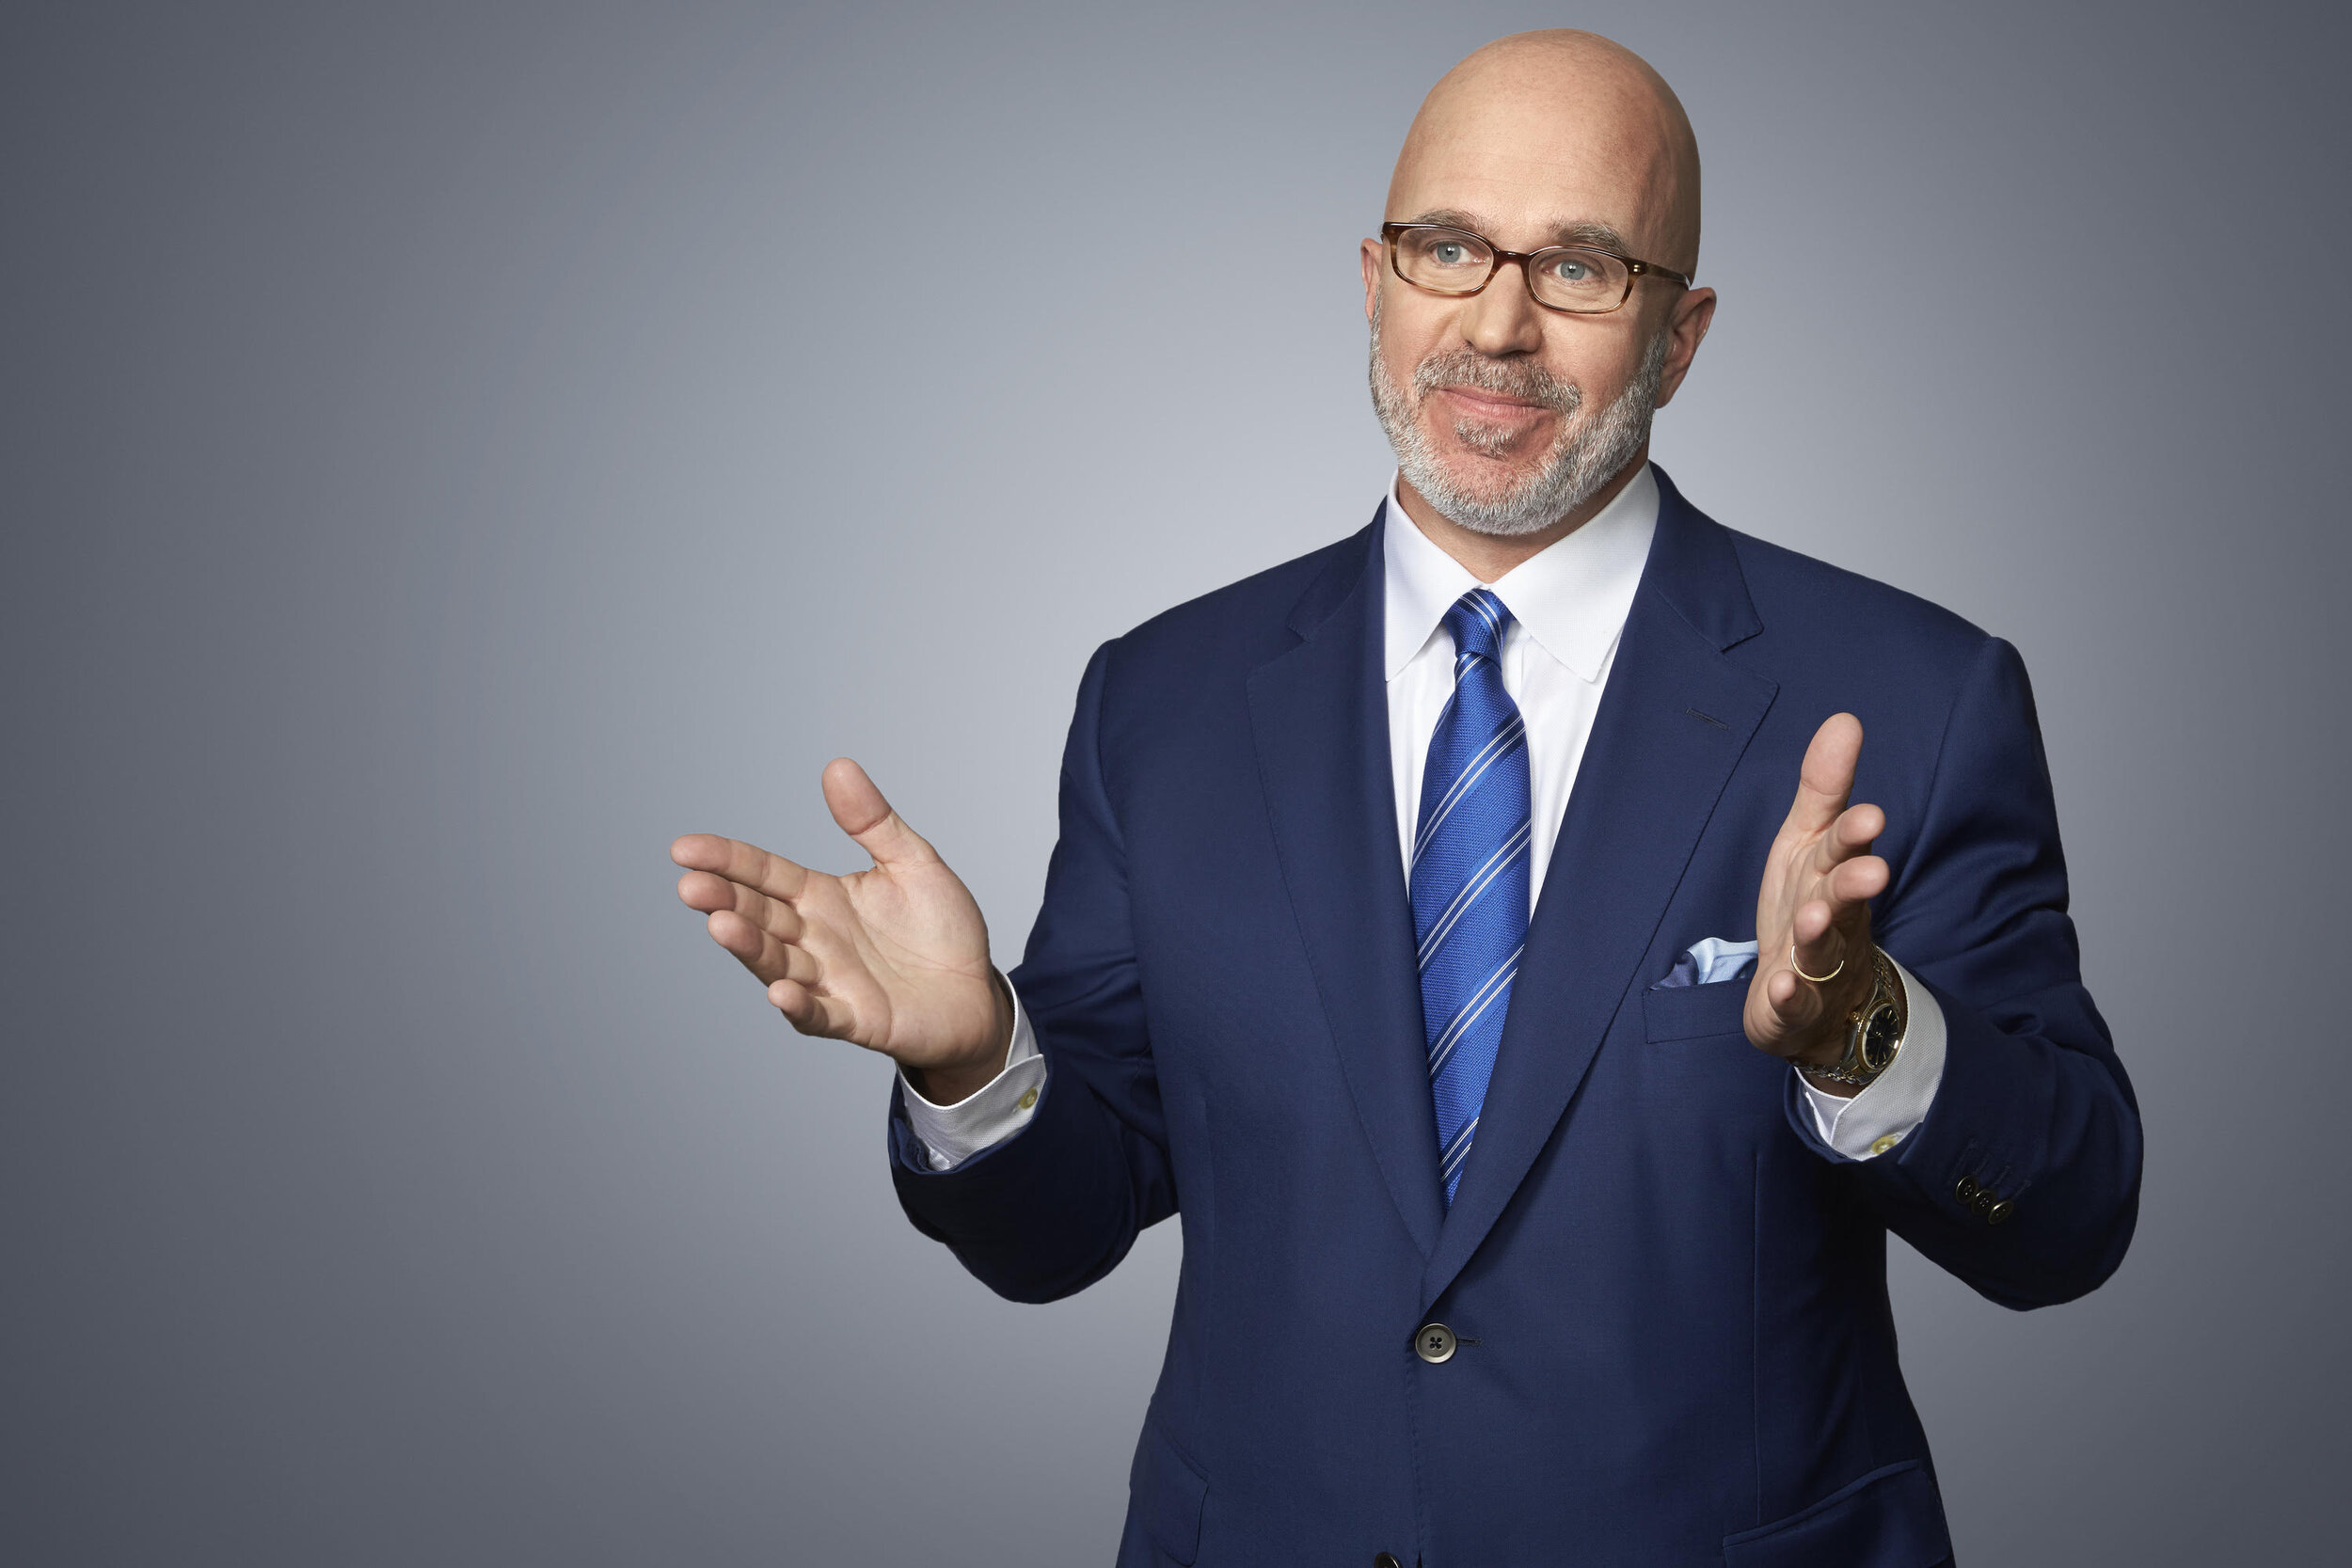 Michael is the host of his radio show on SiriusXM and his TV show Smerconish on CNN.